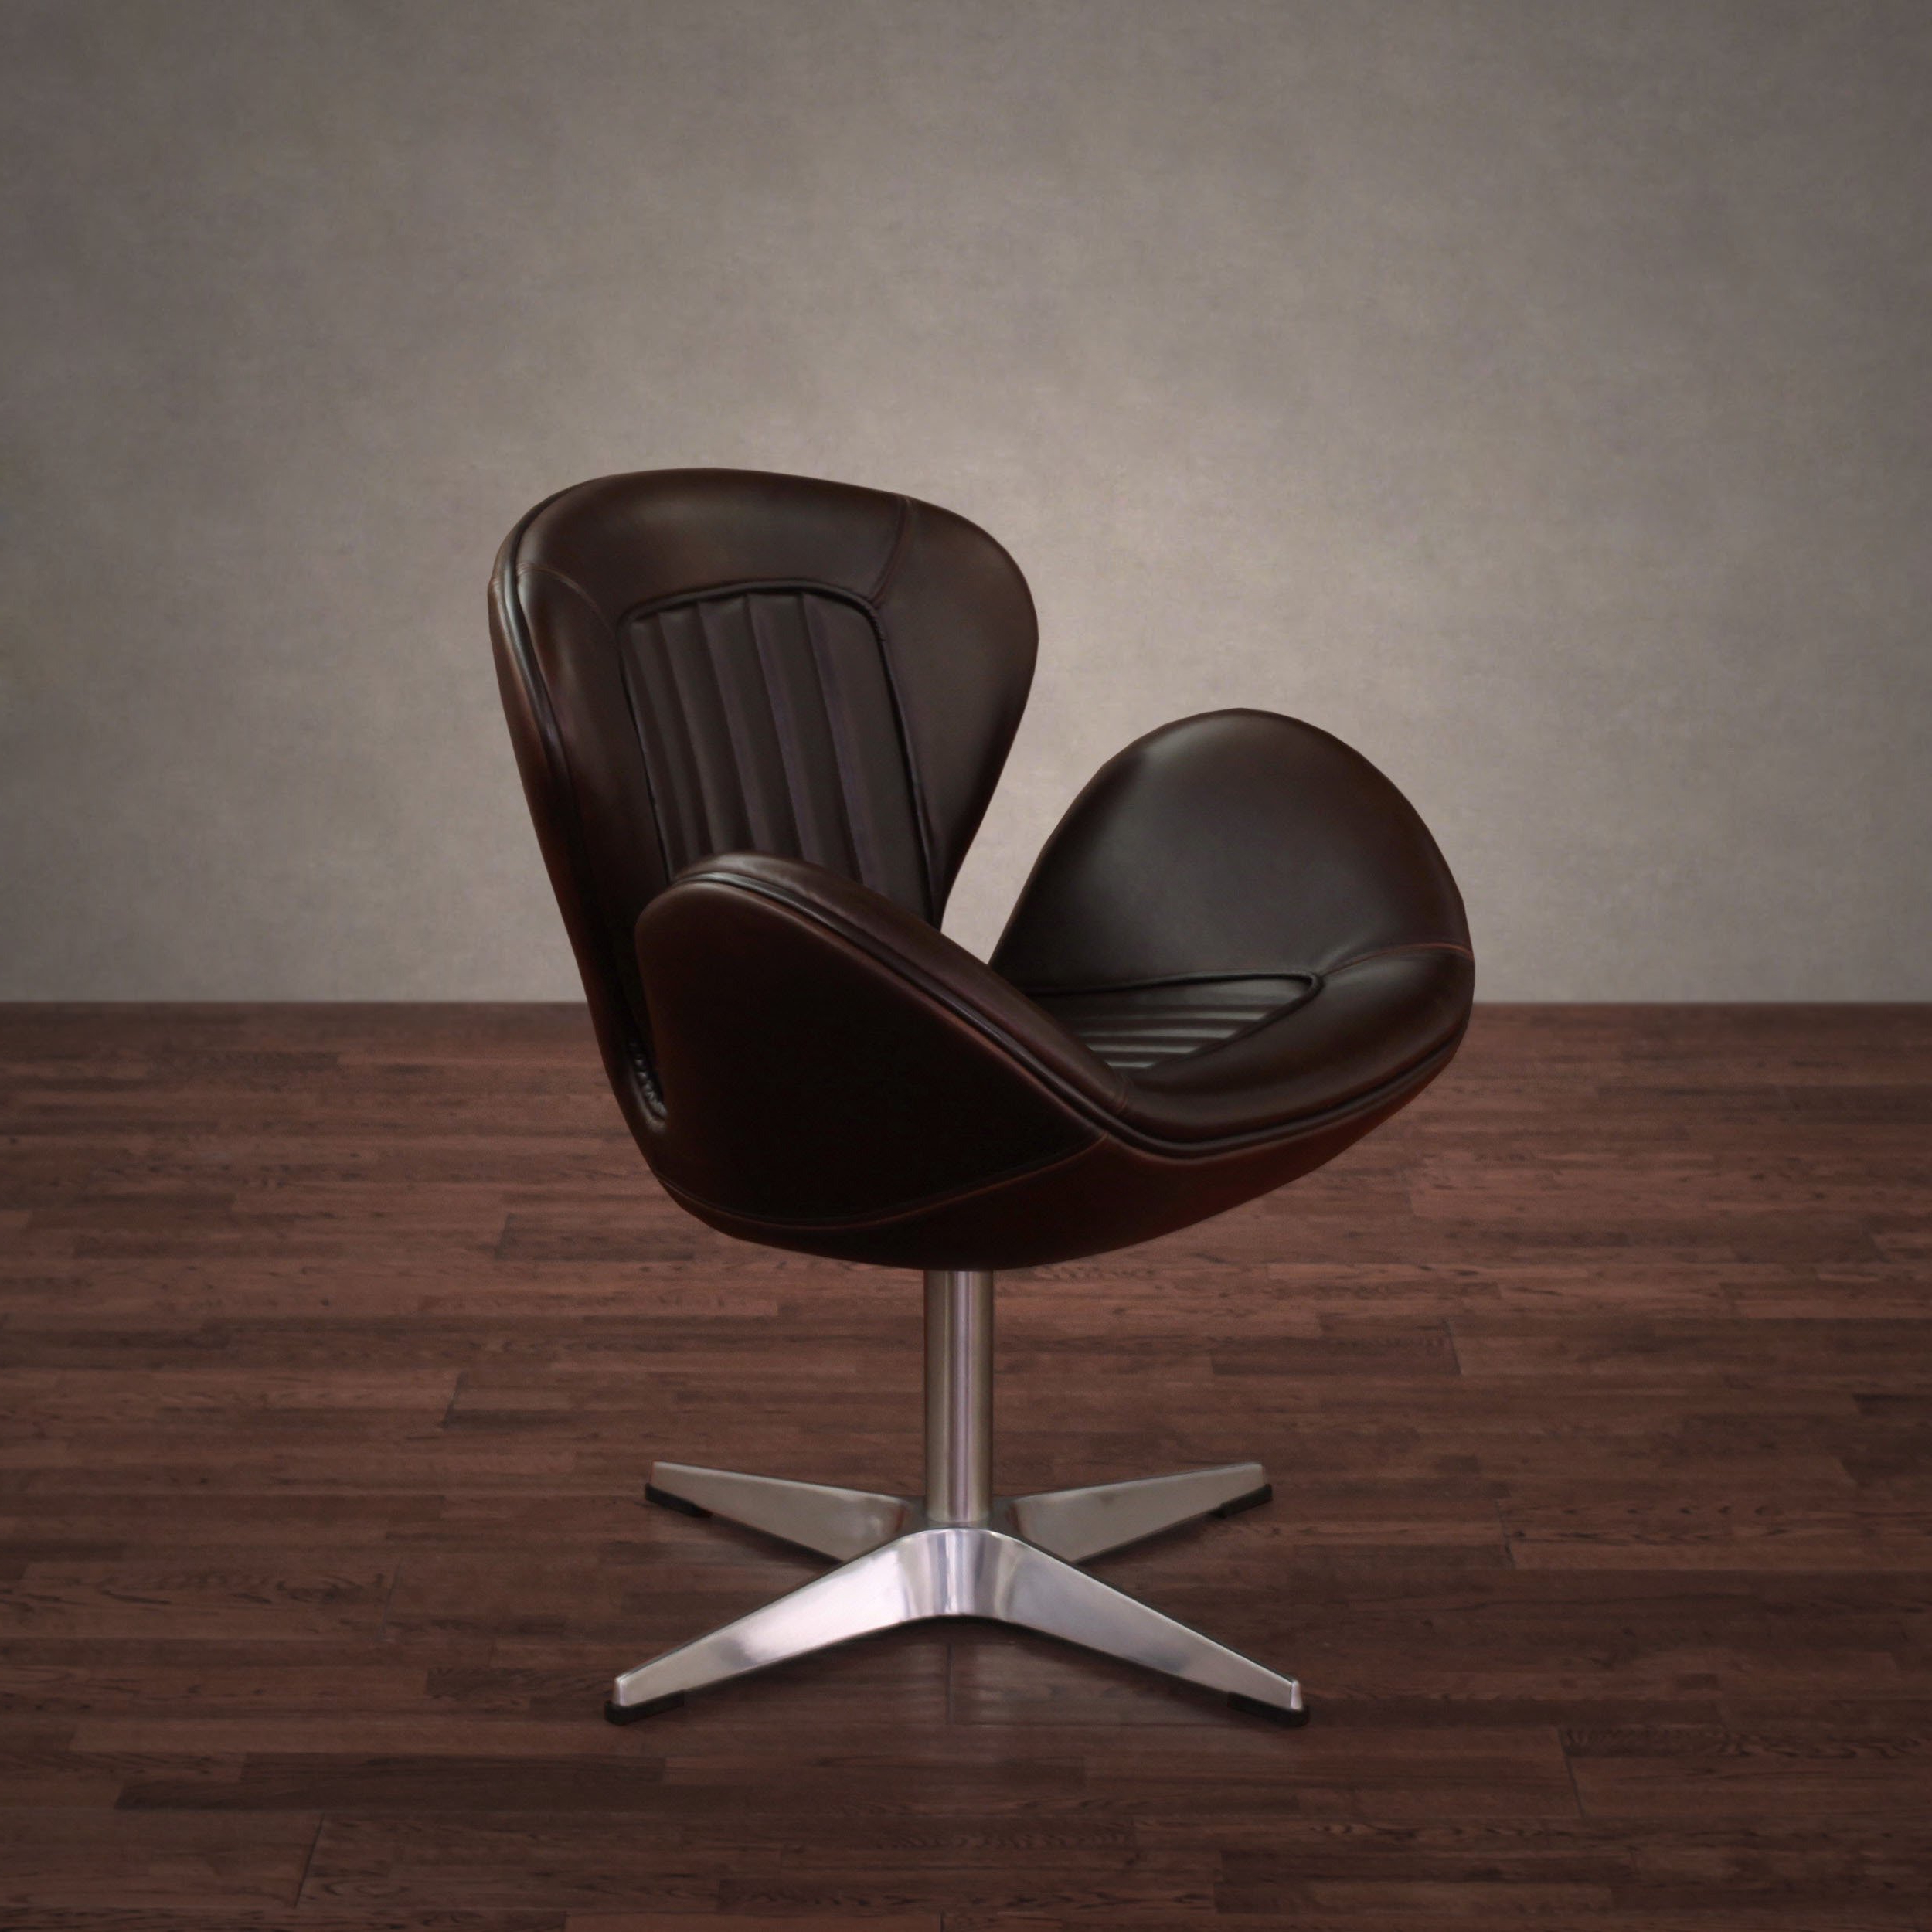 Swivel Tobacco Leather Chairs With Regard To Popular Shop Amelia Vintage Tobacco Leather Swivel Chair – Free Shipping (View 15 of 20)